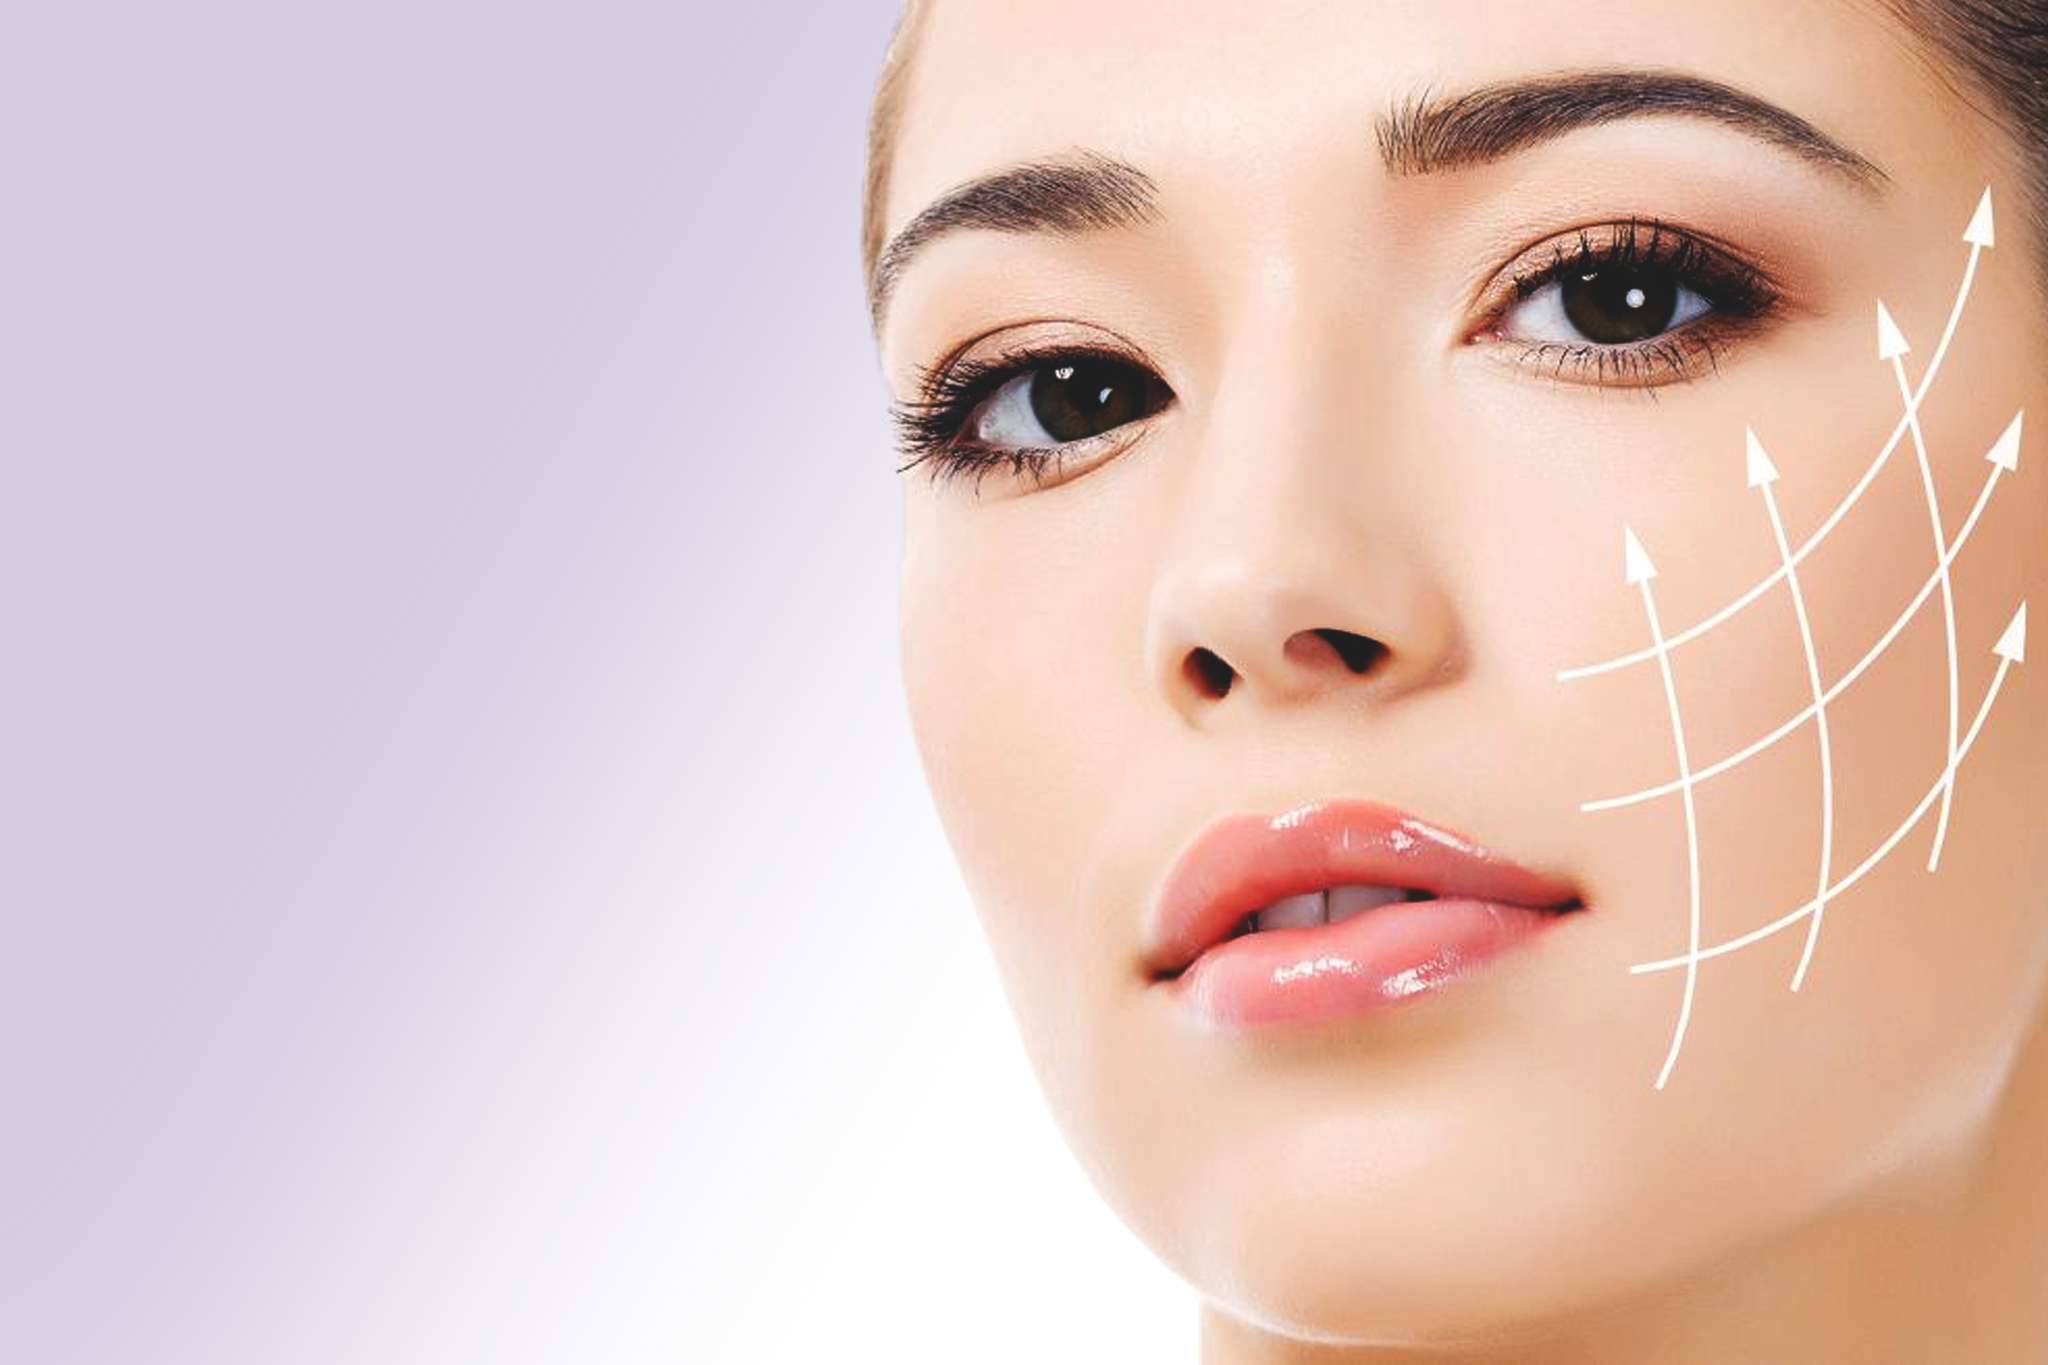 neu look medical spa and skin centers pdo thread lifts in san diego